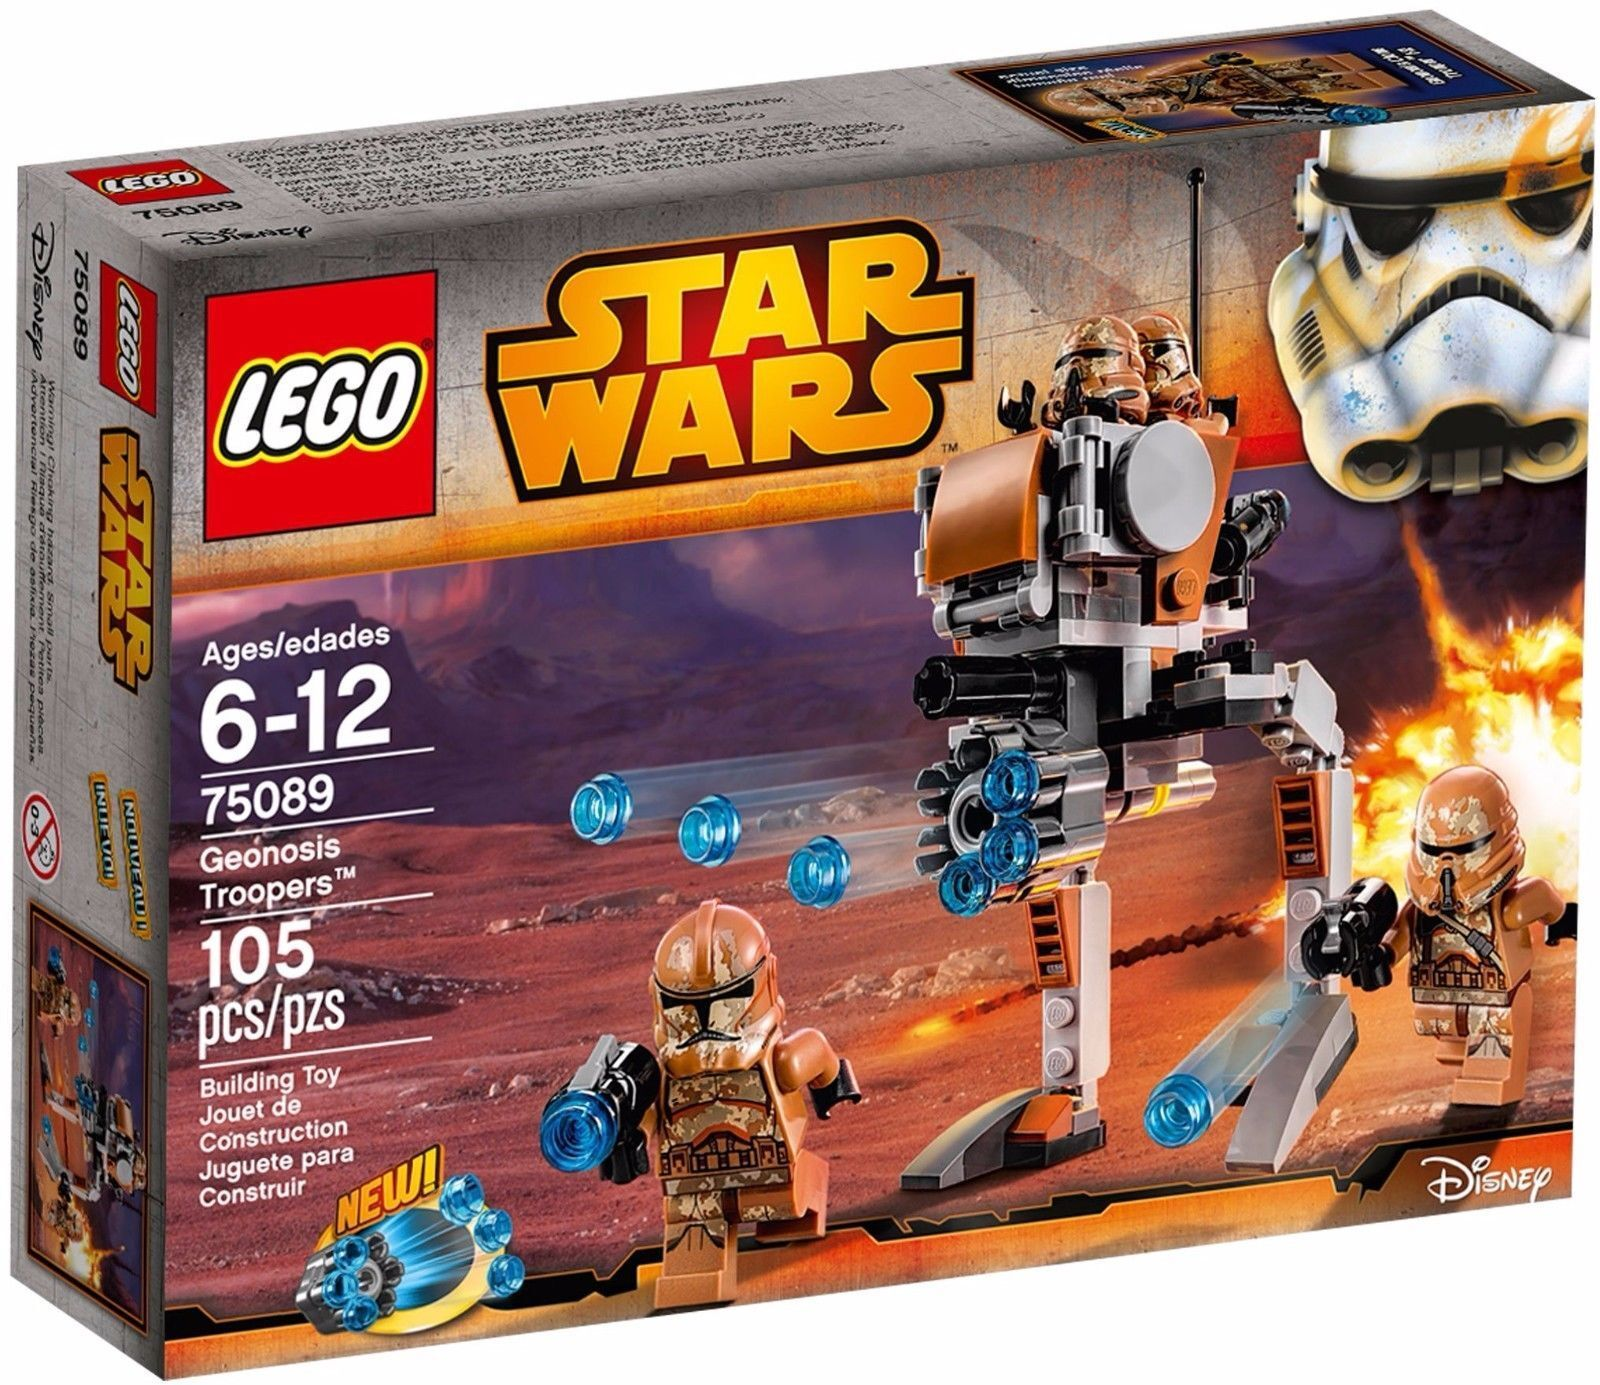 LEGO STAR WARS 75089 Geonosis Troopers with 4 minifigures Clone with weapons